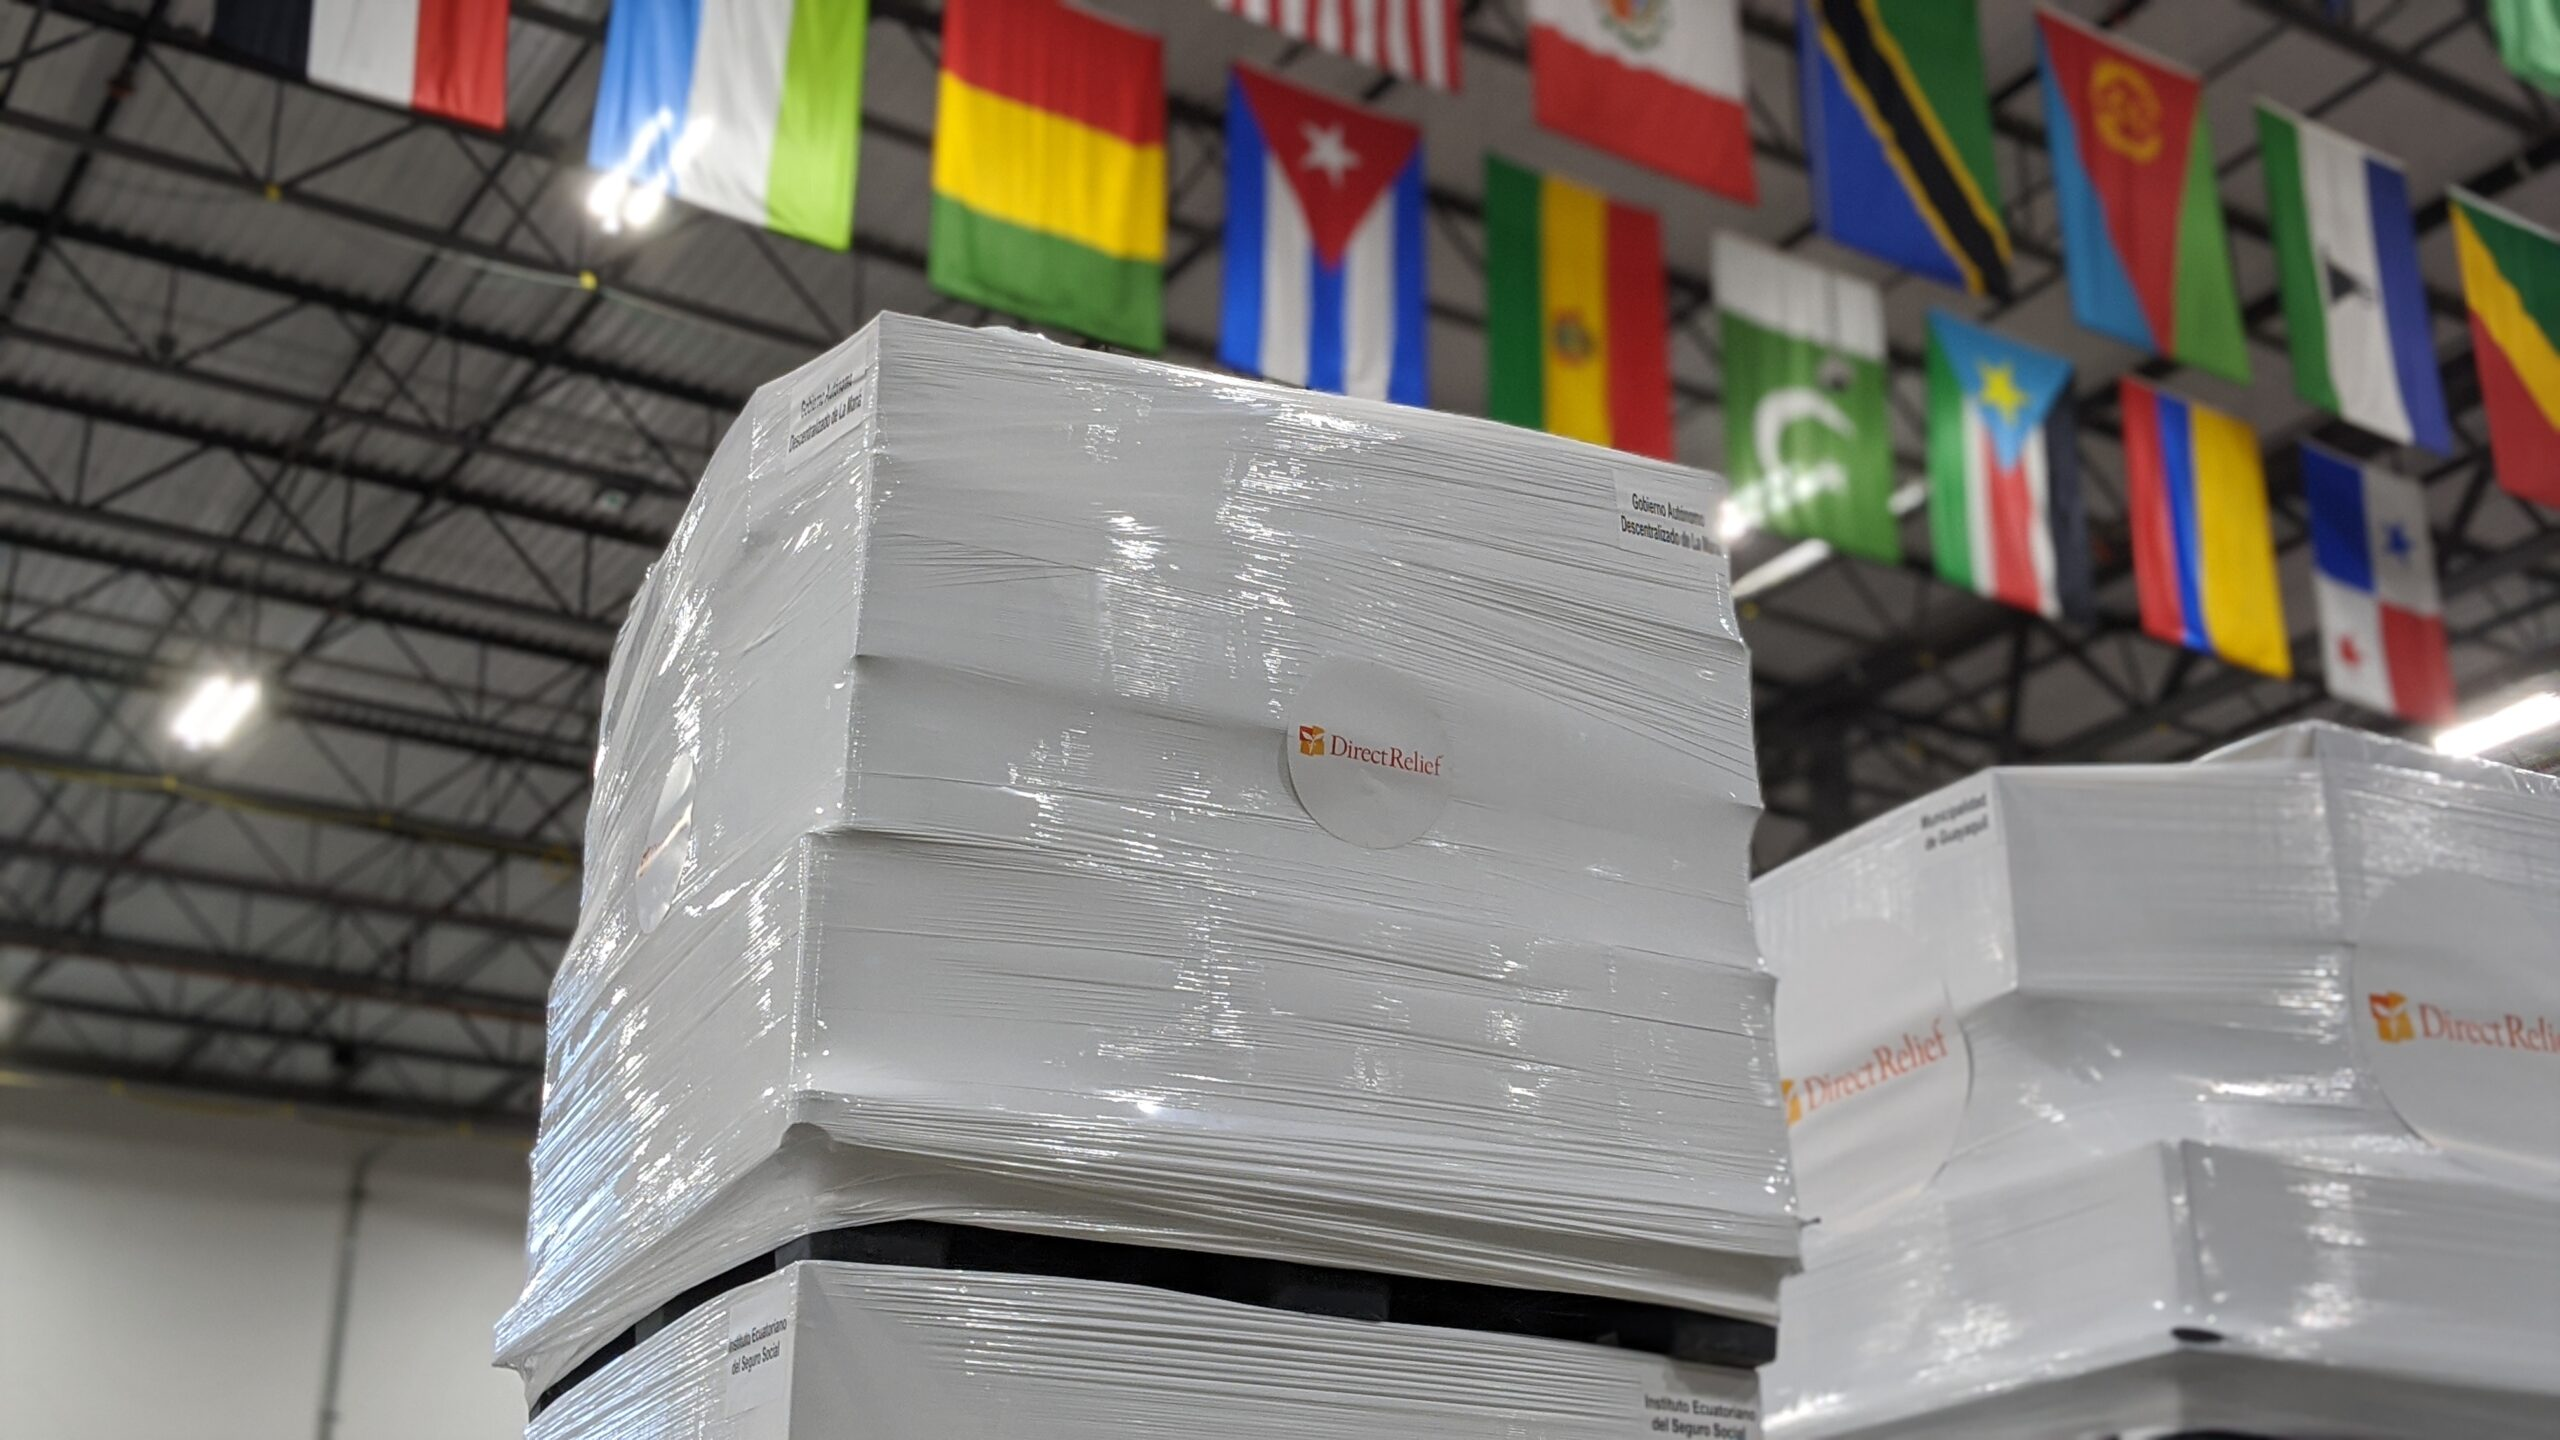 Medical supplies are staged in Direct Relief's California warehouse for delivery to Ecuador in response to the Covid-19 pandemic. (Photo: Tony Morain/Direct Relief)